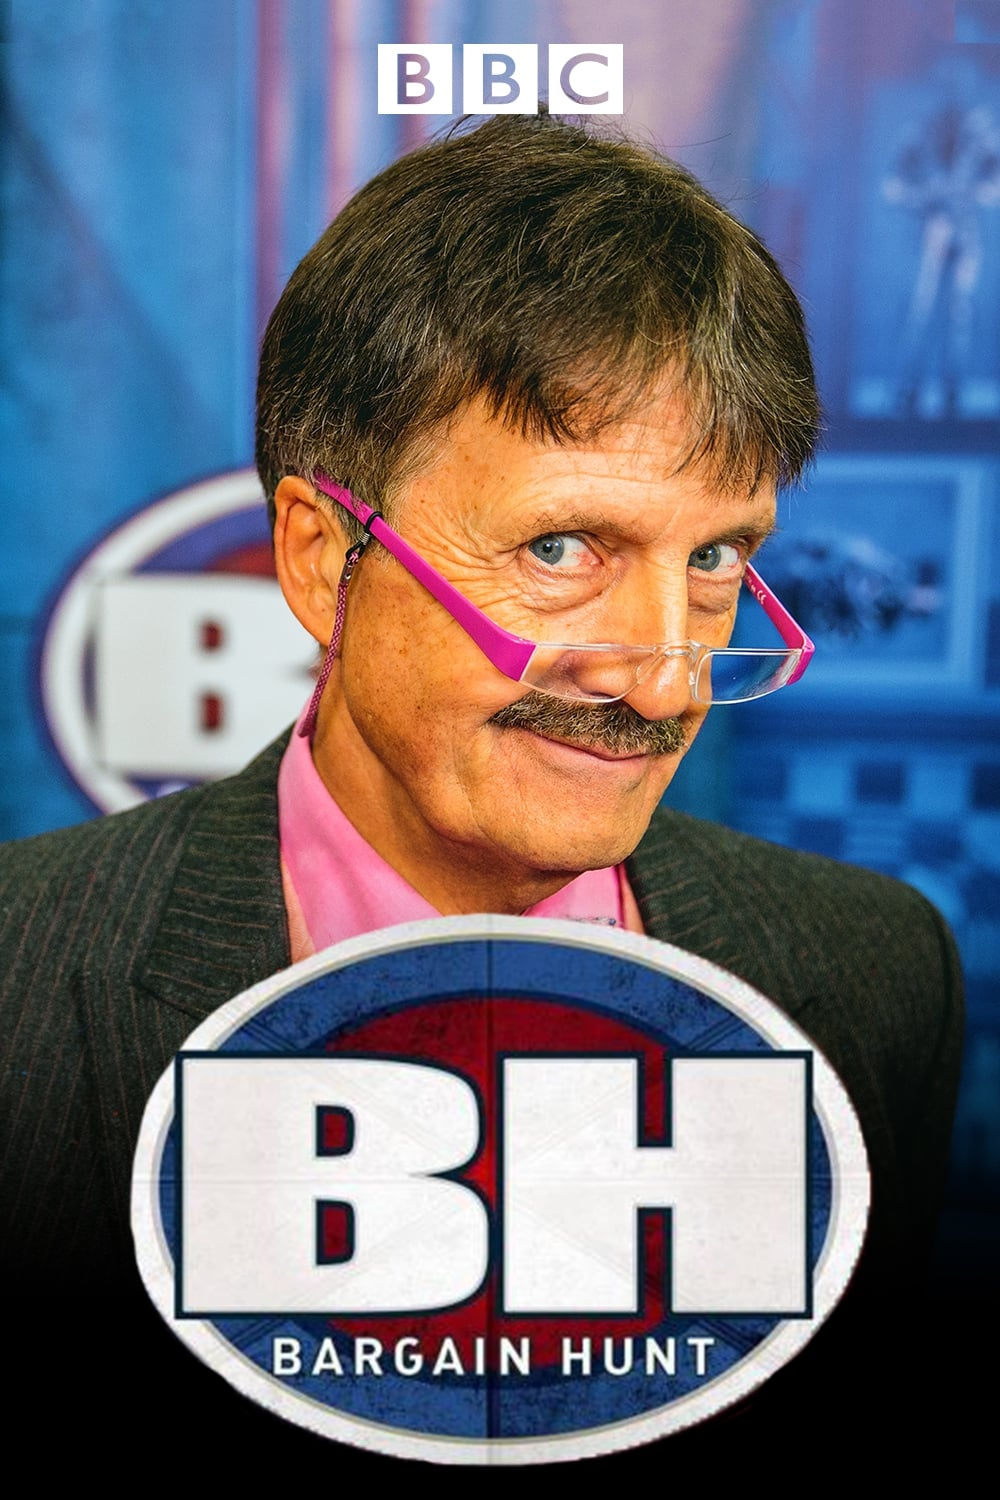 Bargain Hunt on FREECABLE TV